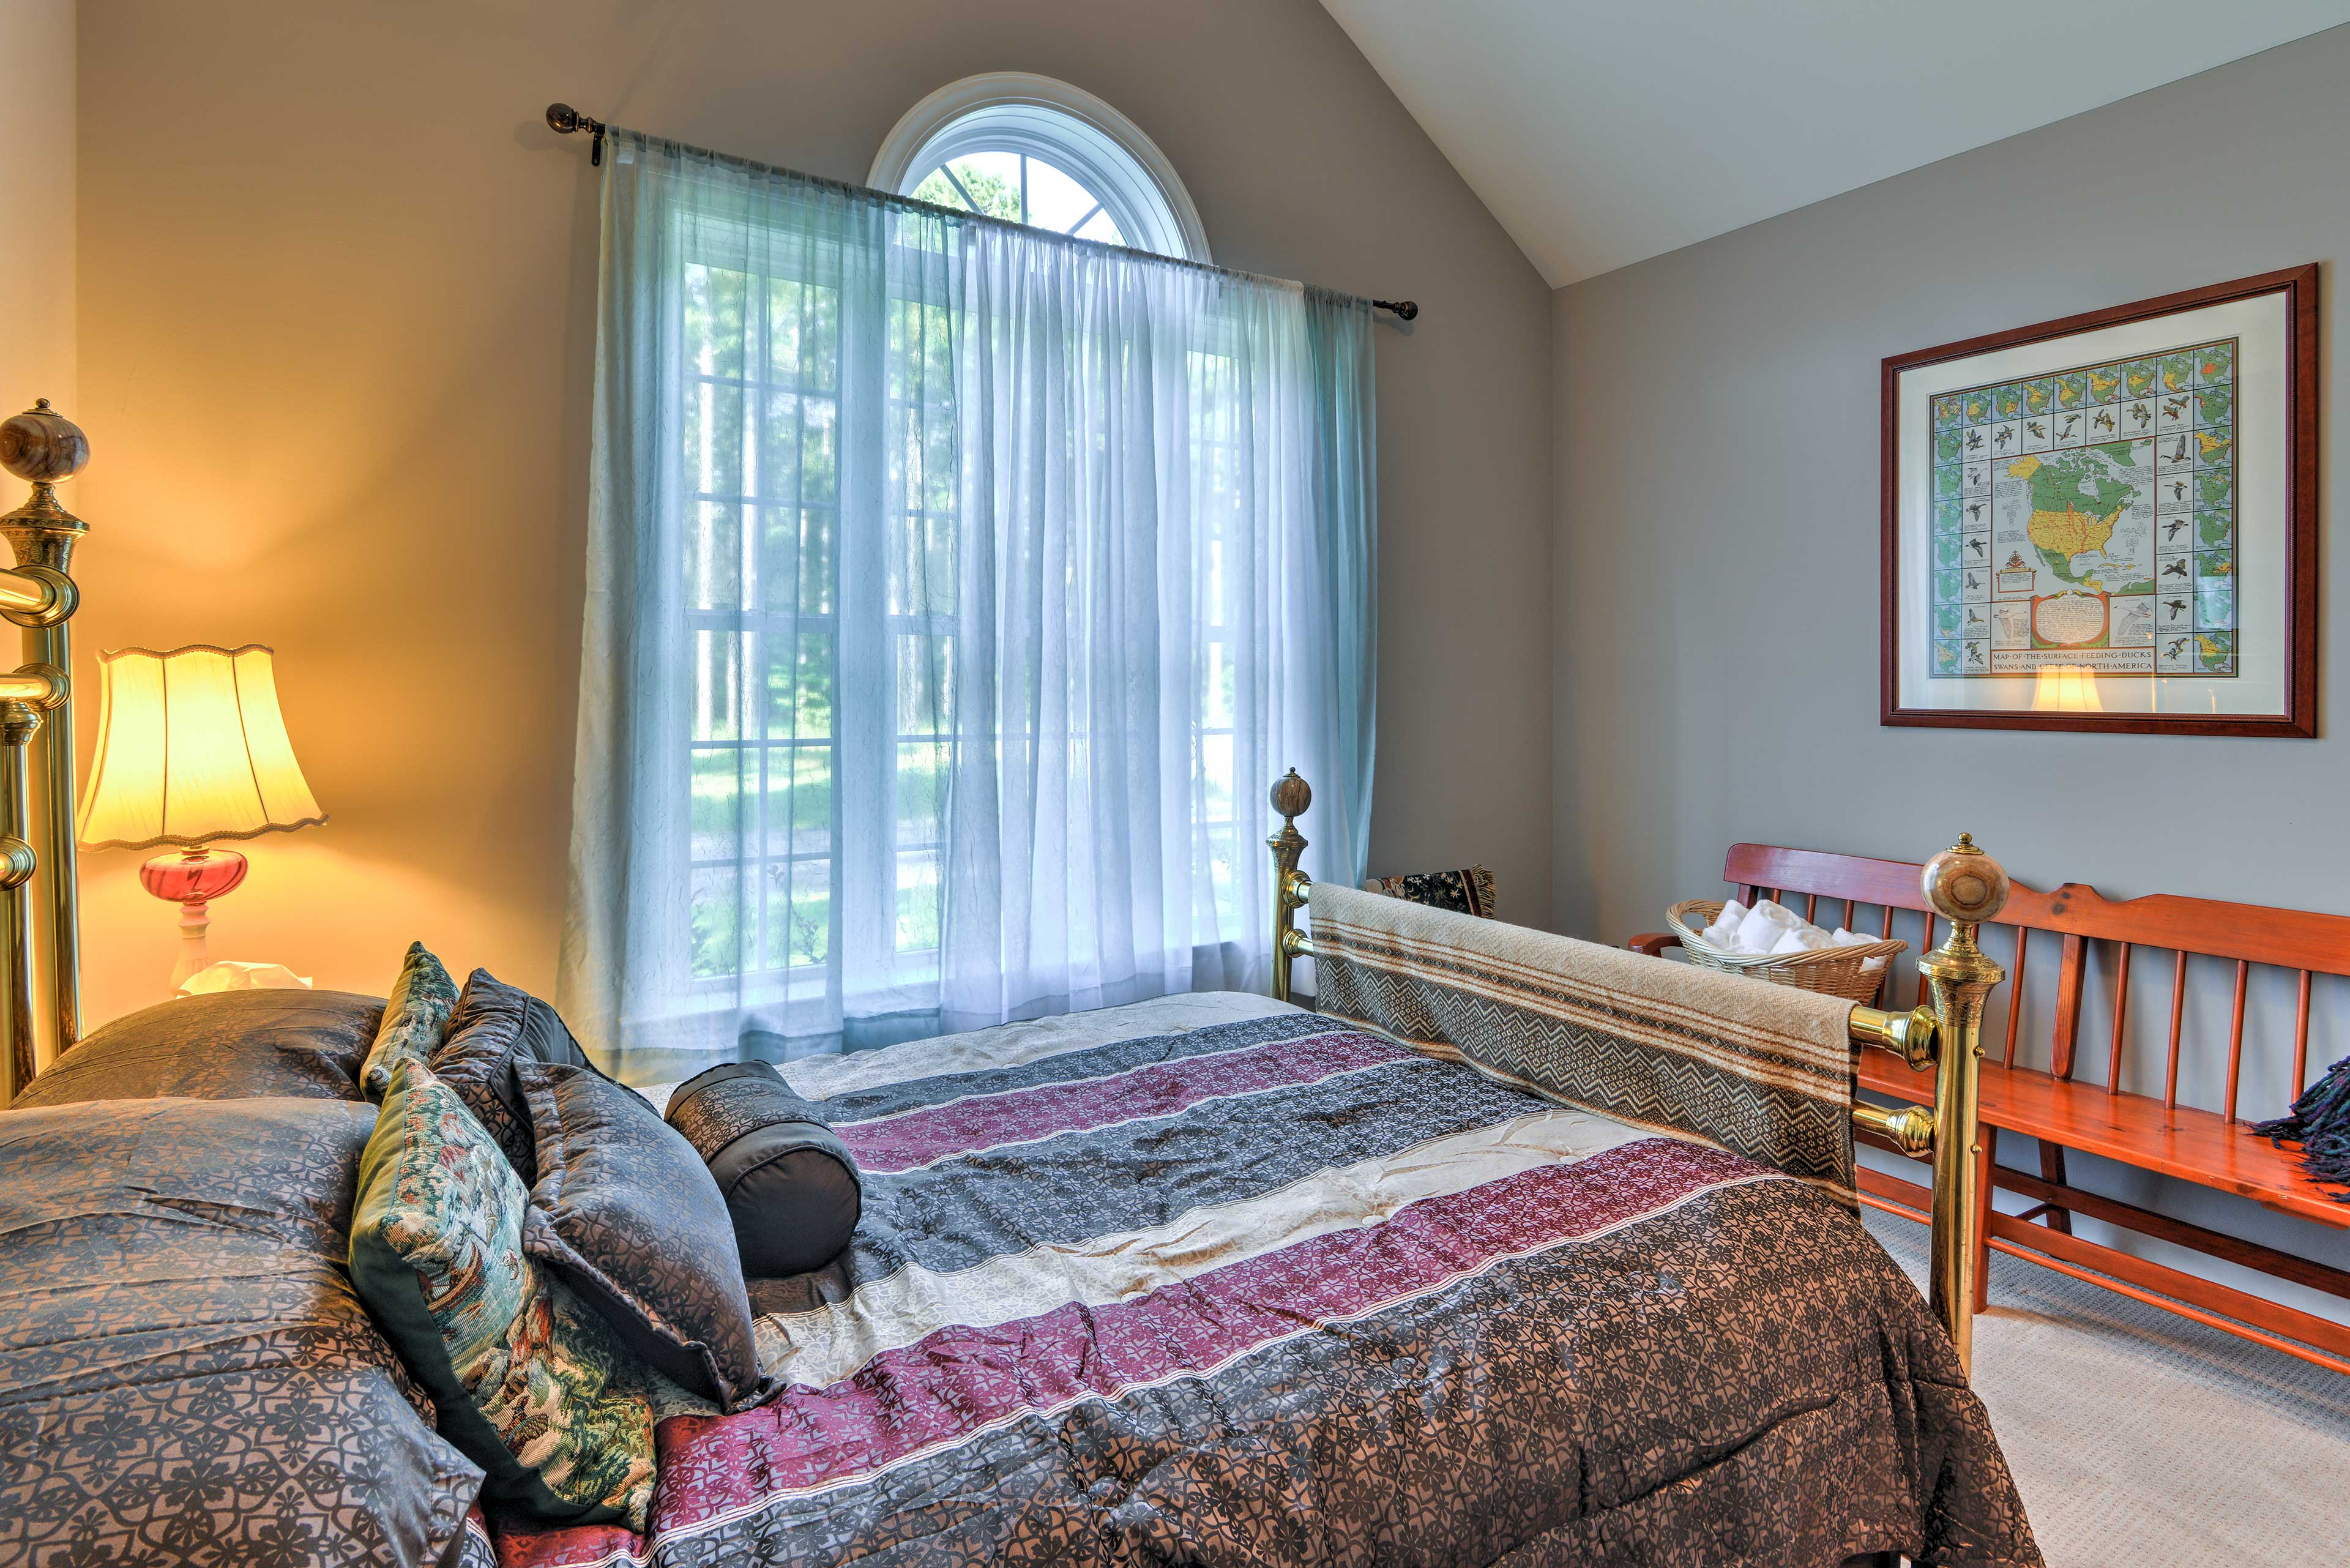 Cuddle up in this queen bed to enjoy peaceful nights of sleep.